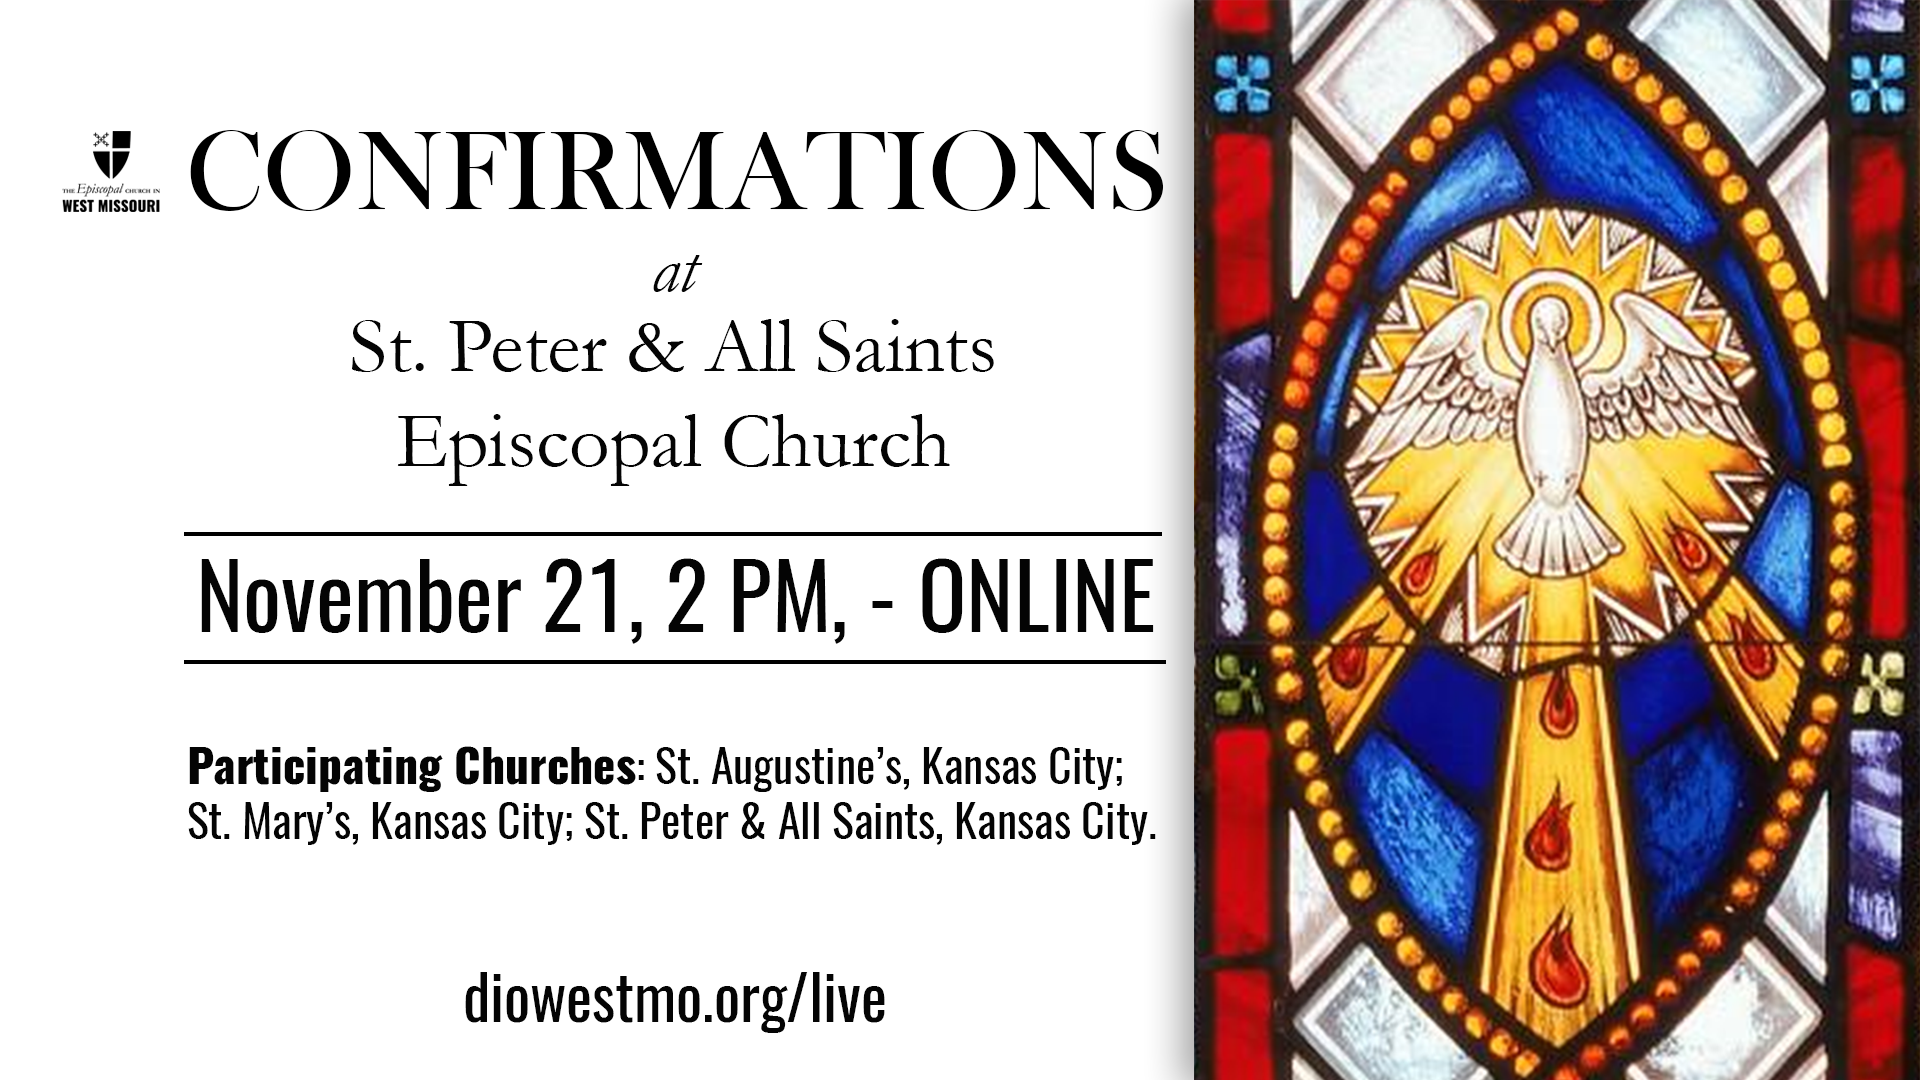 Live Broadcast – Area Confirmations at St. Peter & All Saints